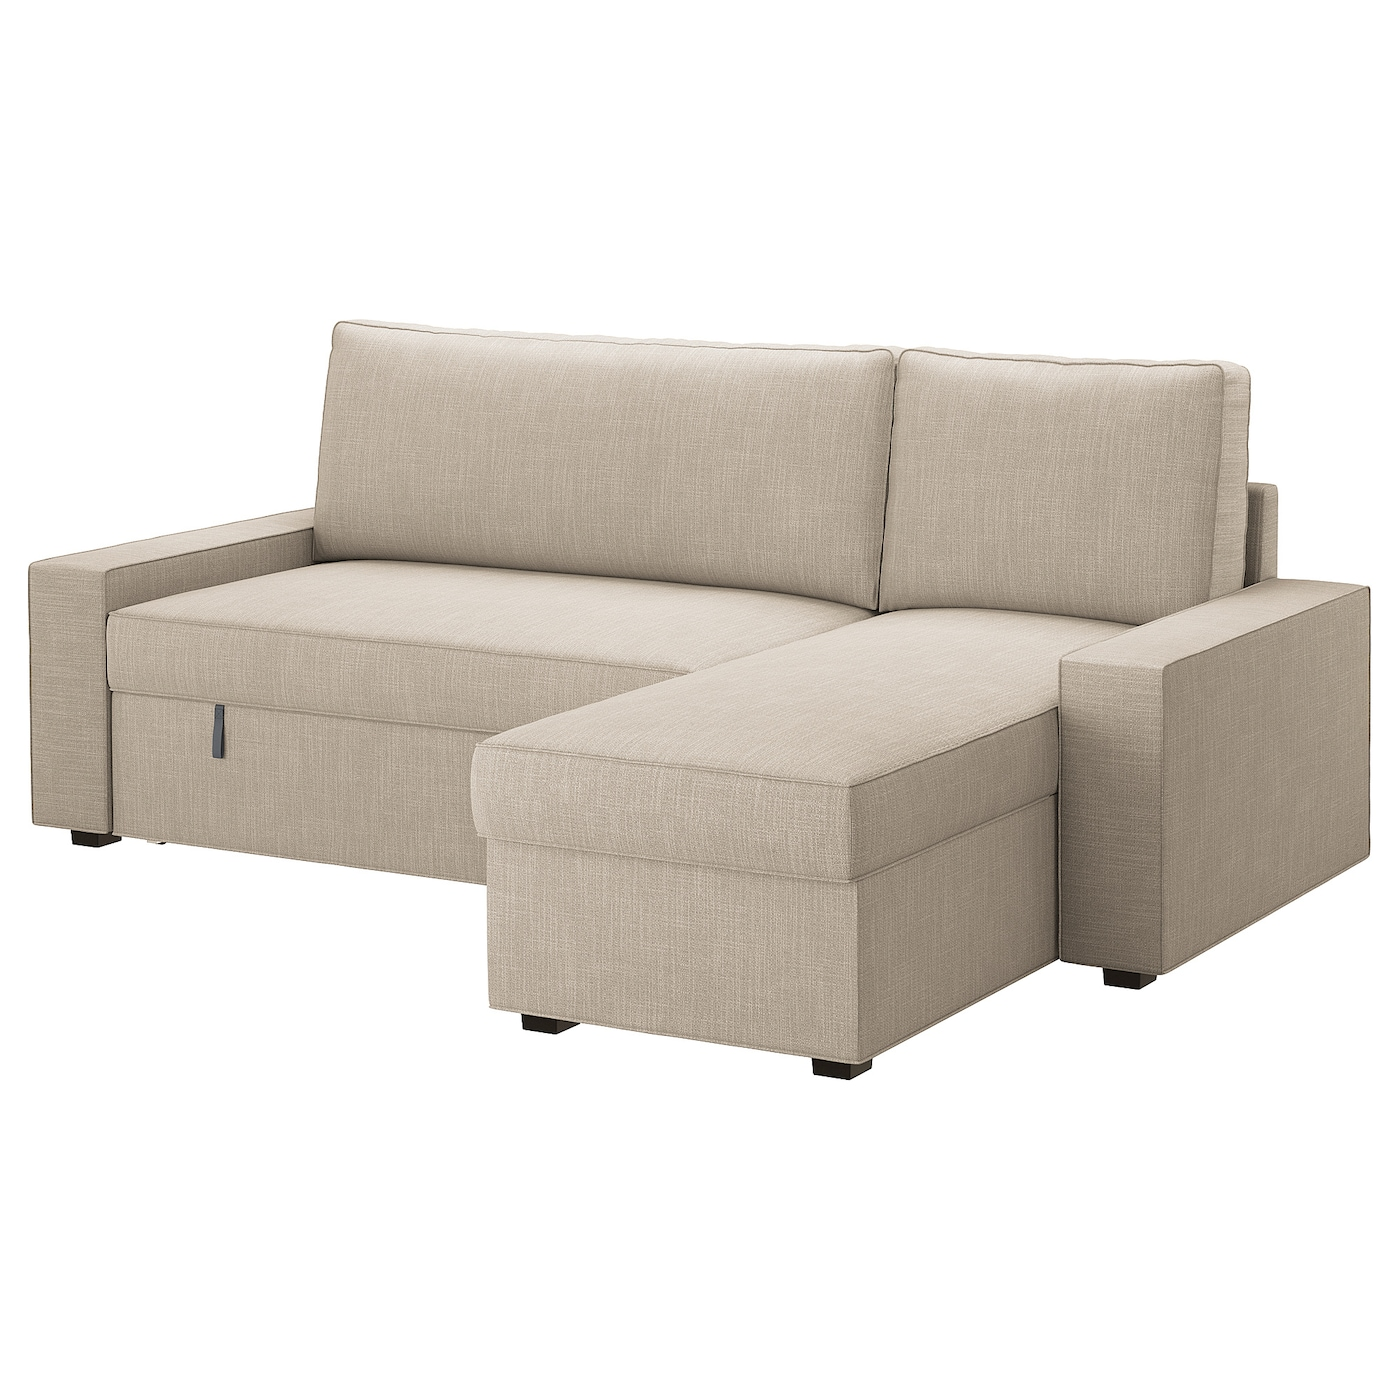 Vilasund sofa bed with chaise longue hillared beige ikea for Sofas con chaise longue